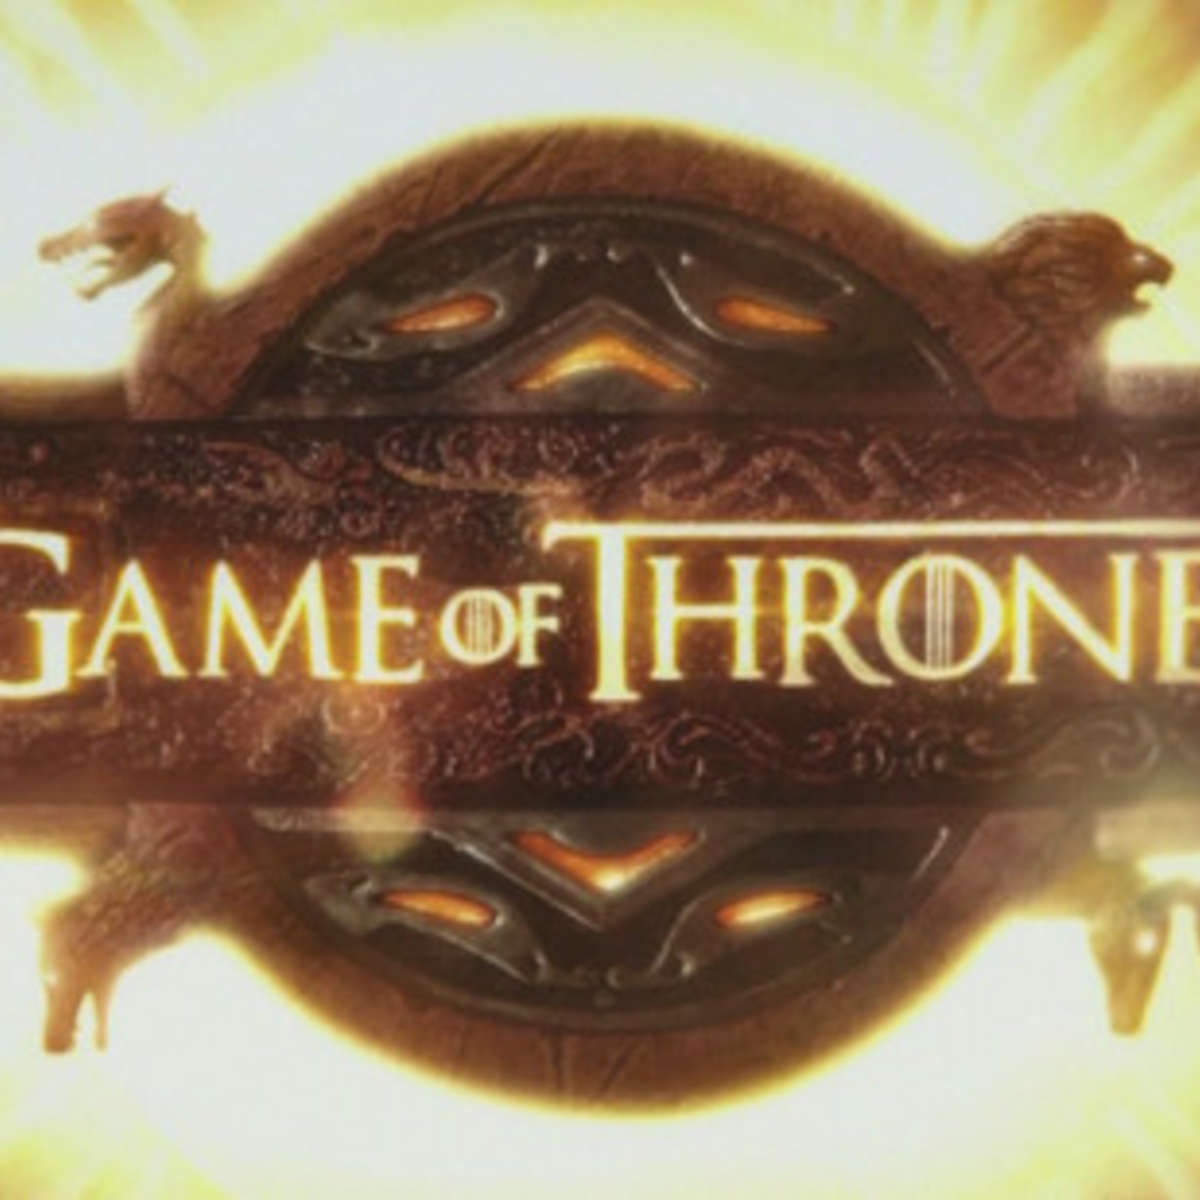 Game_of_Thrones_title_card1_2.jpg